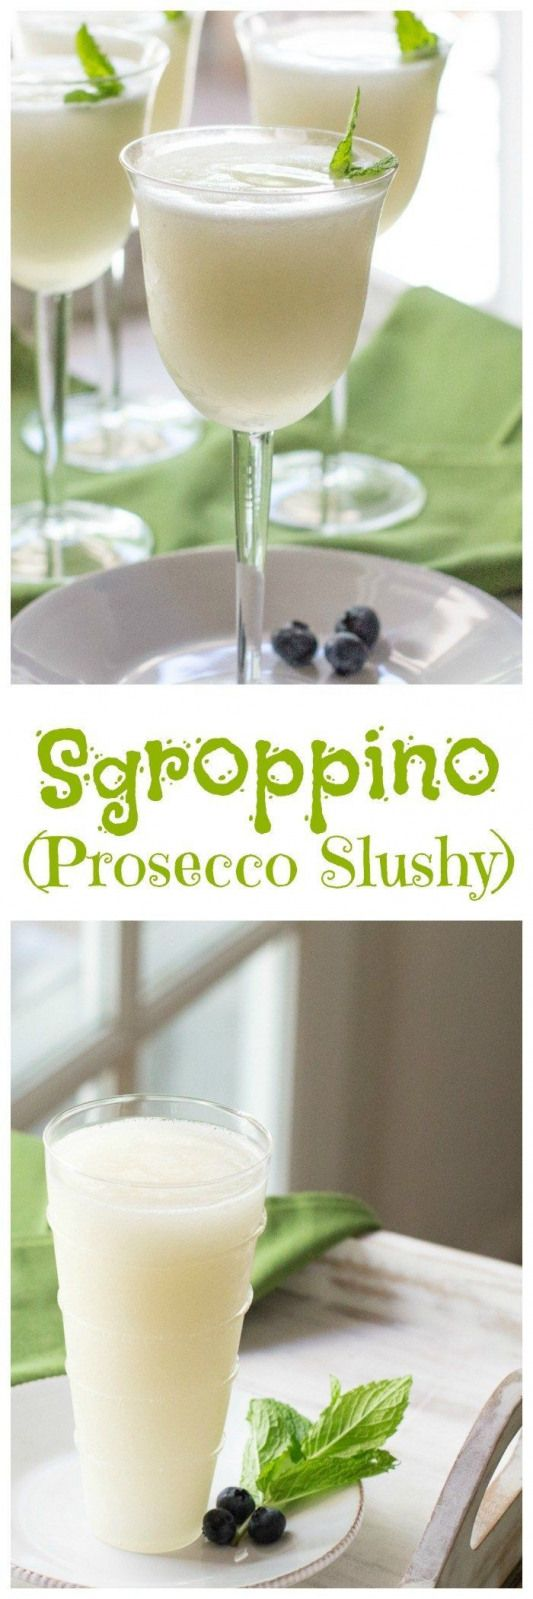 Sgroppino - Italian dessert drink made with lemon sorbet vodka and Prosecco perfect for a dinner party or over the holidays.